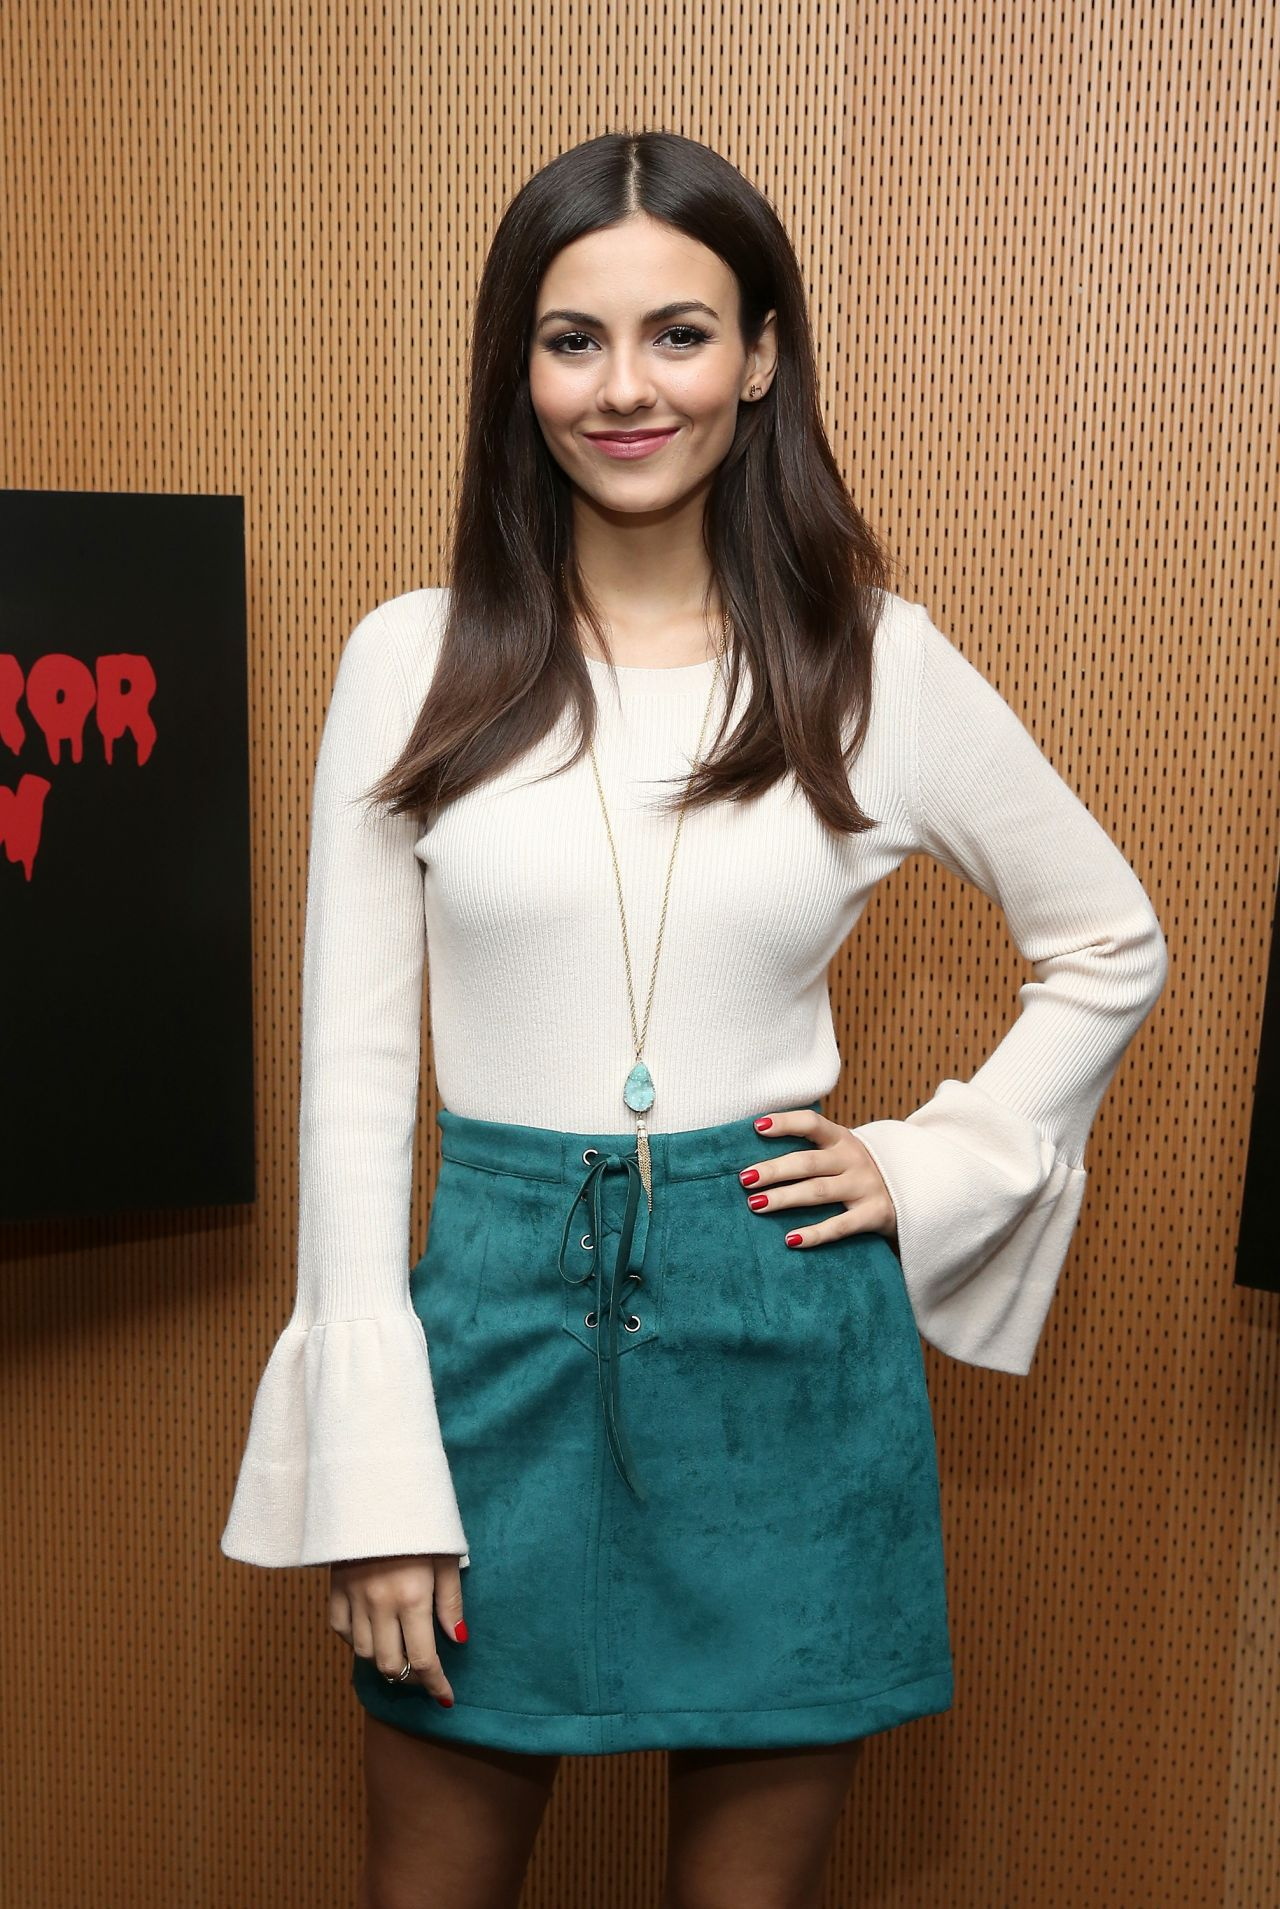 Victoria justice the rocky horror picture show - 4 1